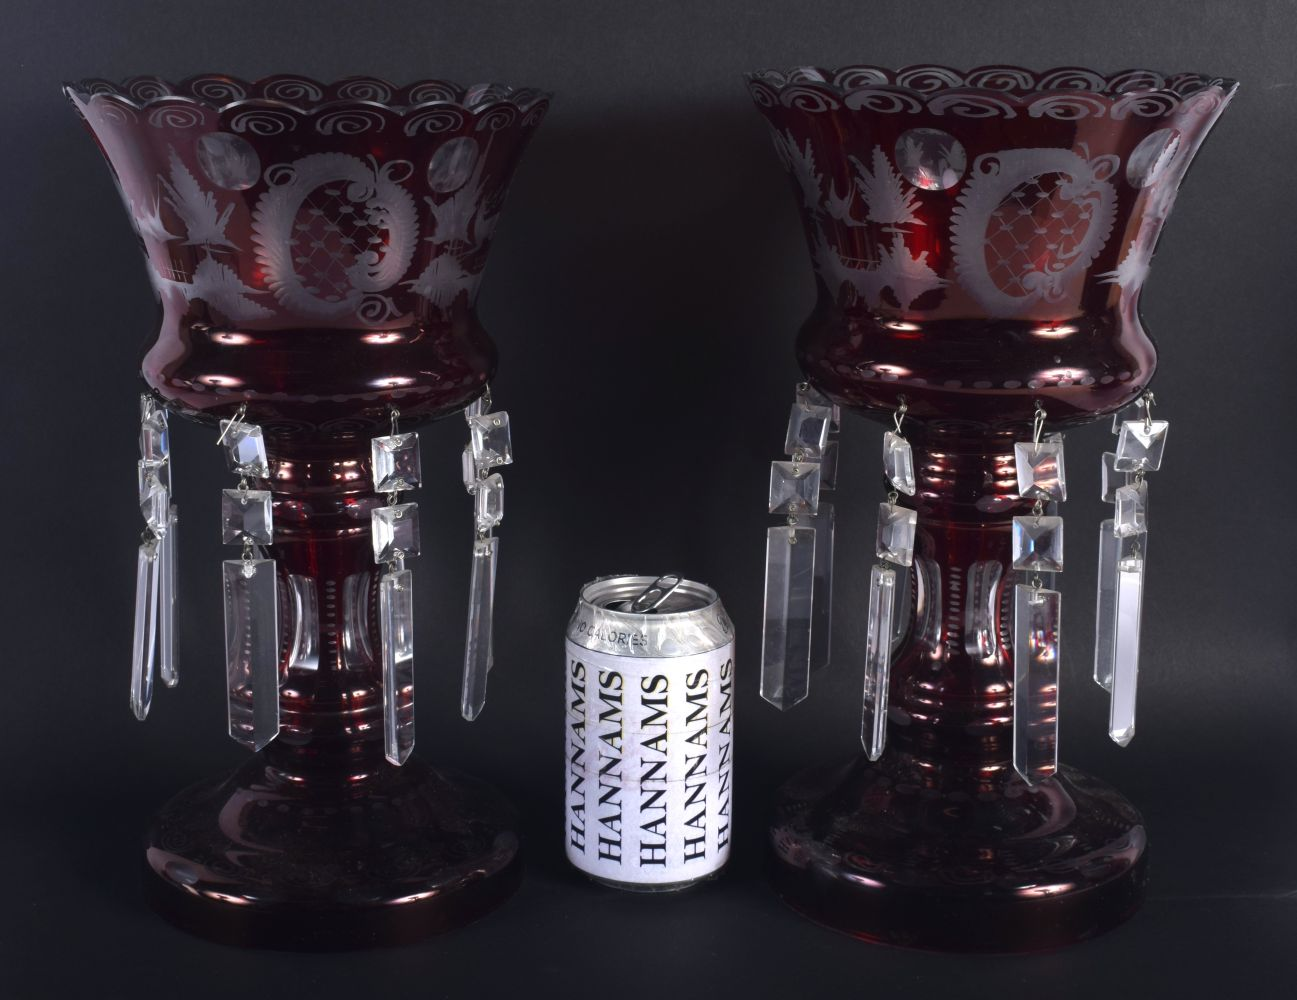 A LARGE PAIR OF VINTAGE RUBY GLASS TABLE LUSTRES decorated with landscapes. 30 cm x 18 cm.